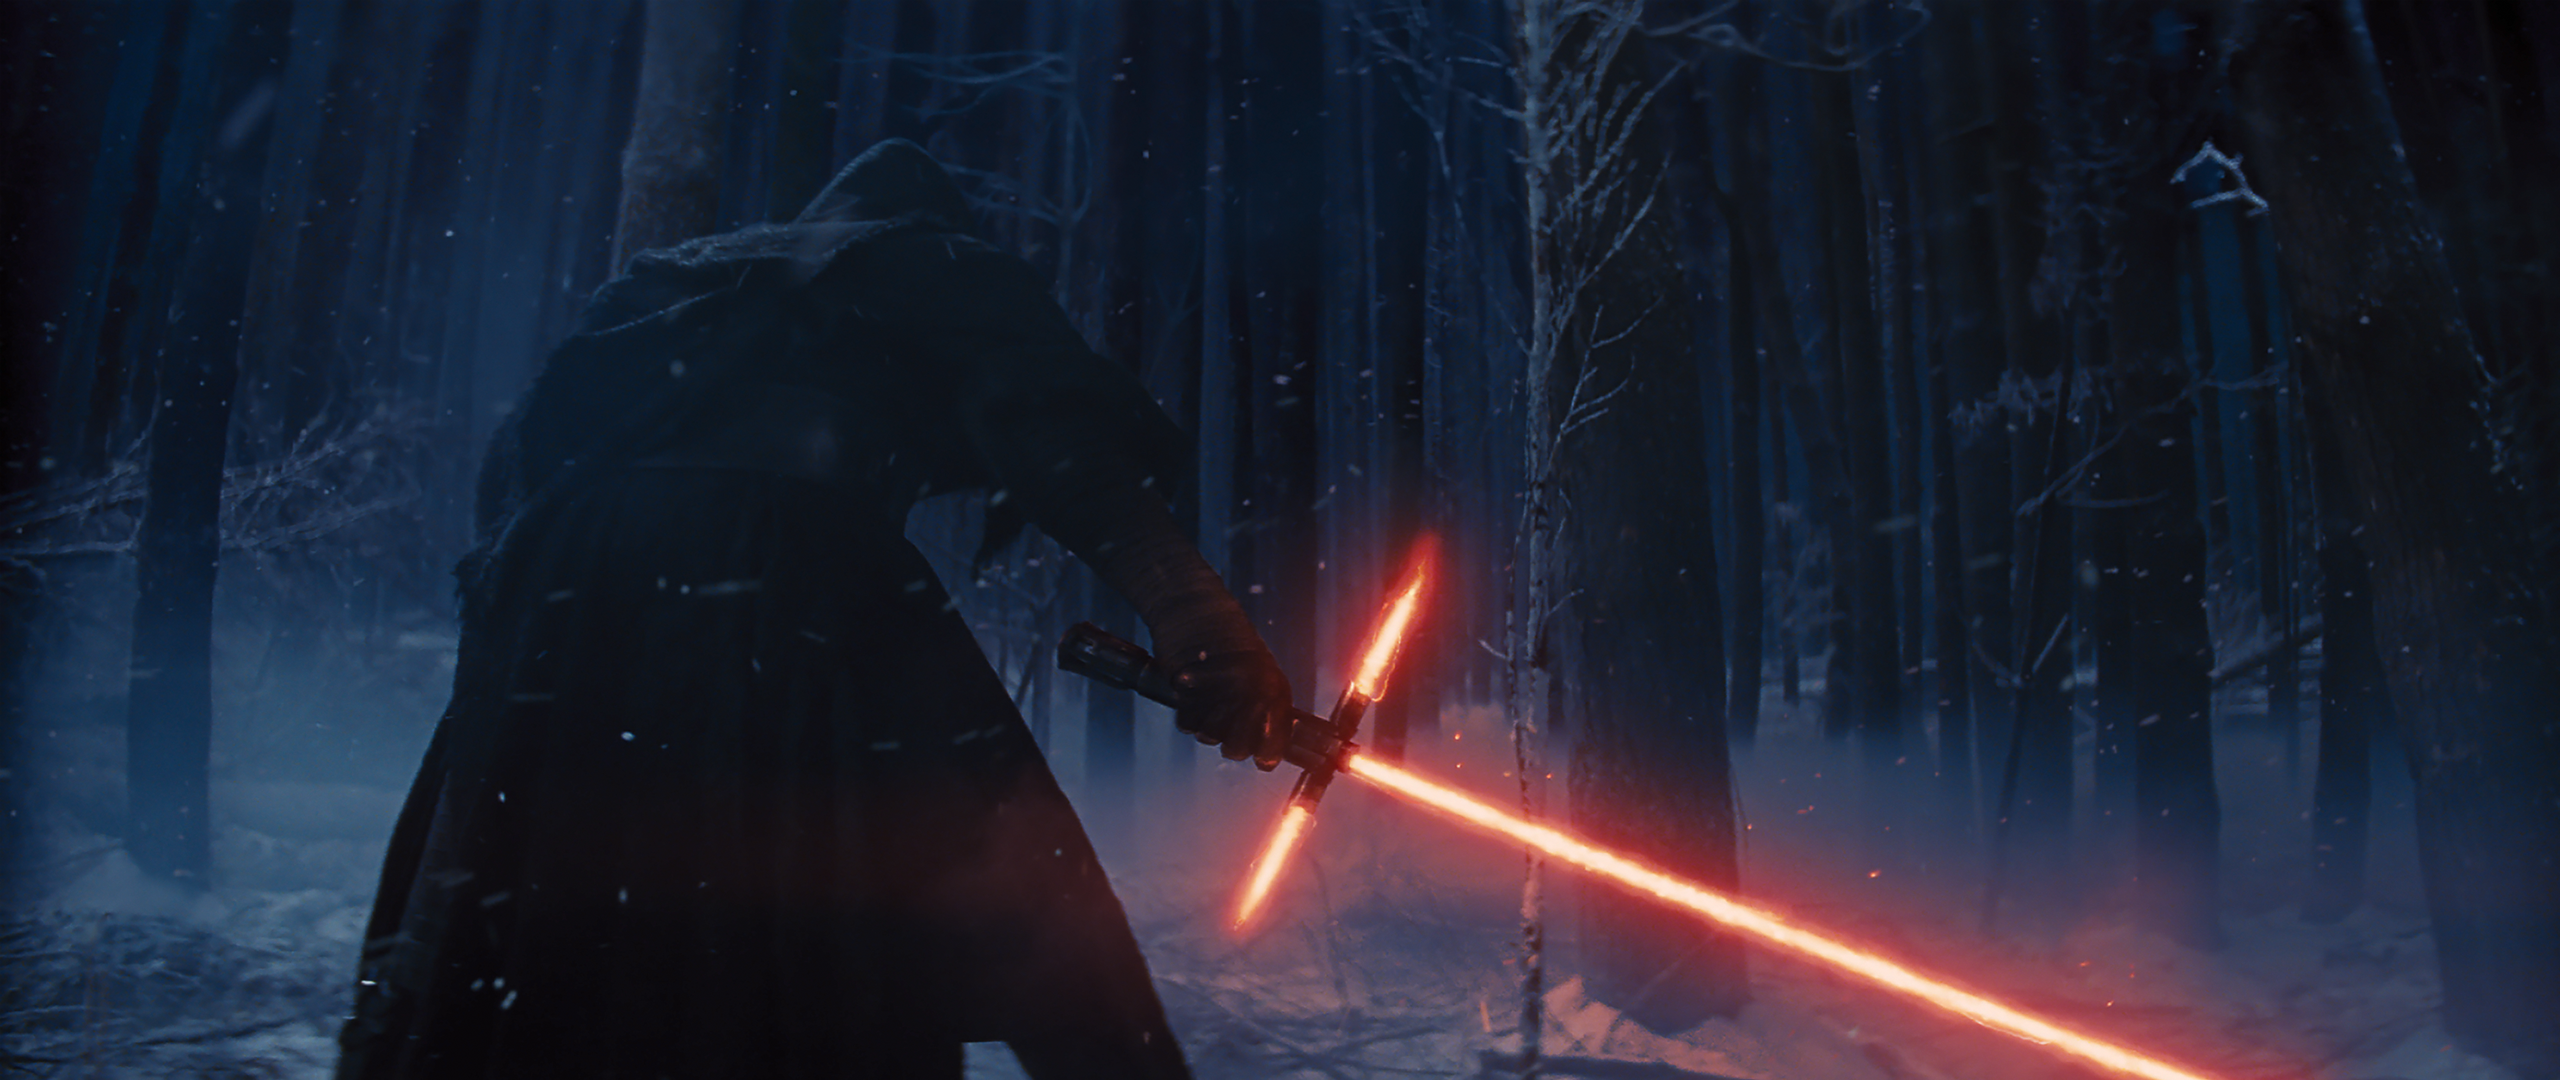 Star Wars 2560 X 1080 Wallpapers Top Free Star Wars 2560 X 1080 Backgrounds Wallpaperaccess